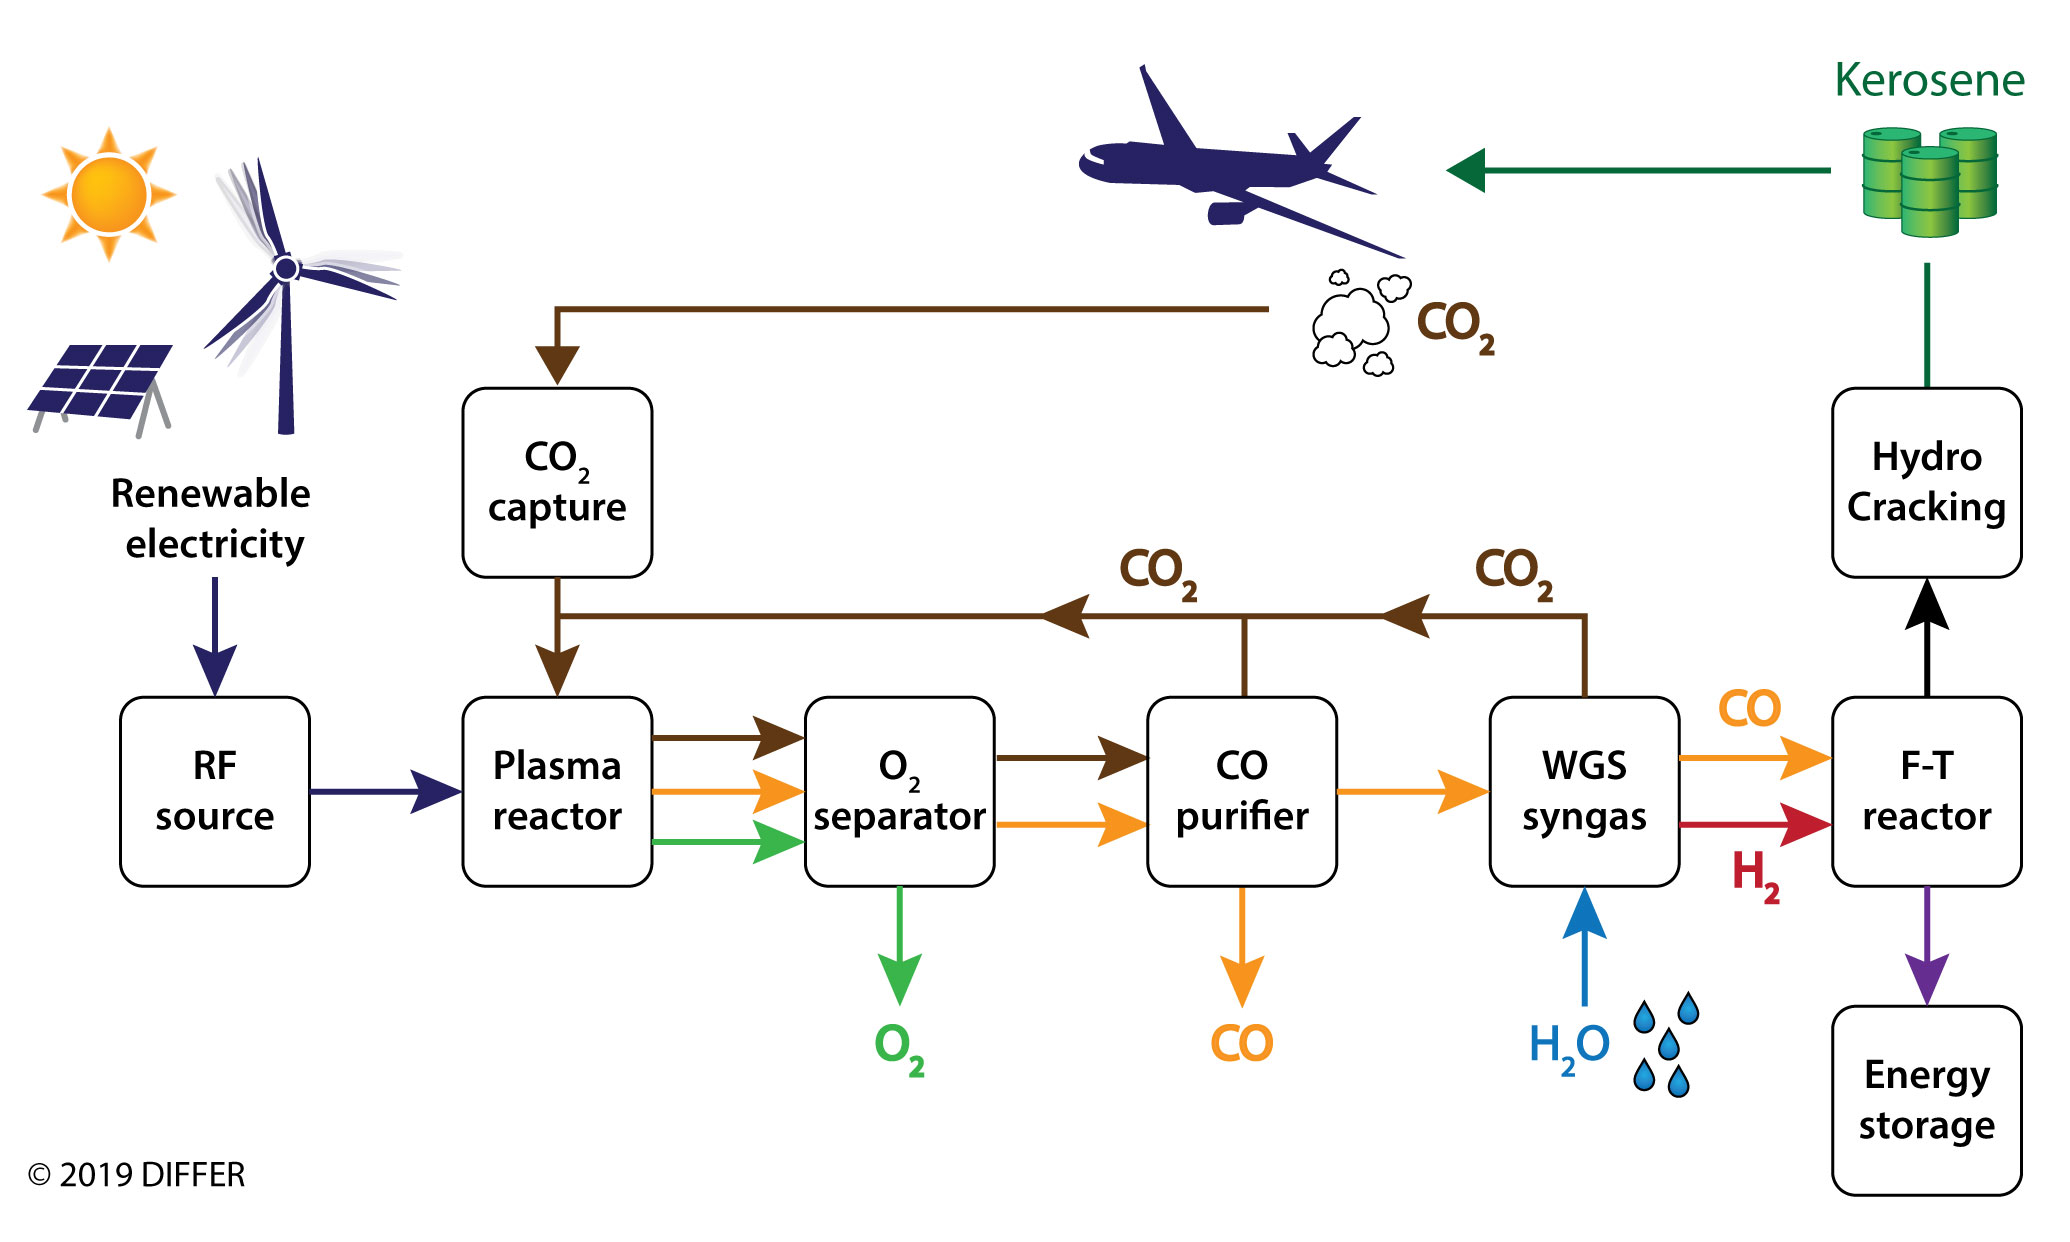 KEROGREEN flow diagram